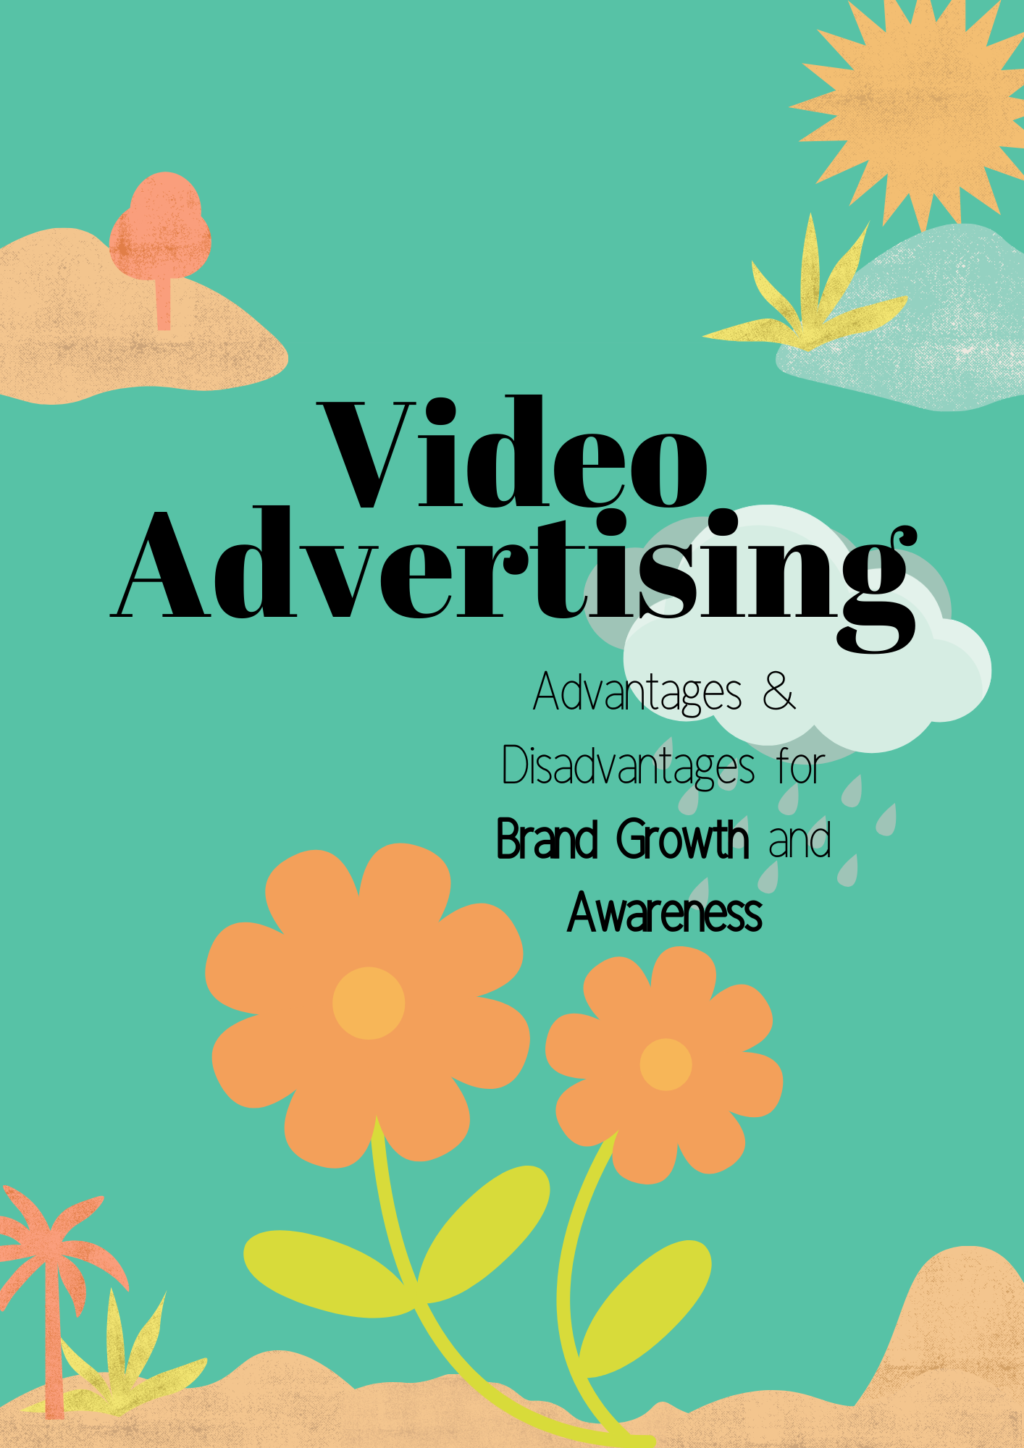 Video advertising: Advantages and disadvantages for brand growth and awareness